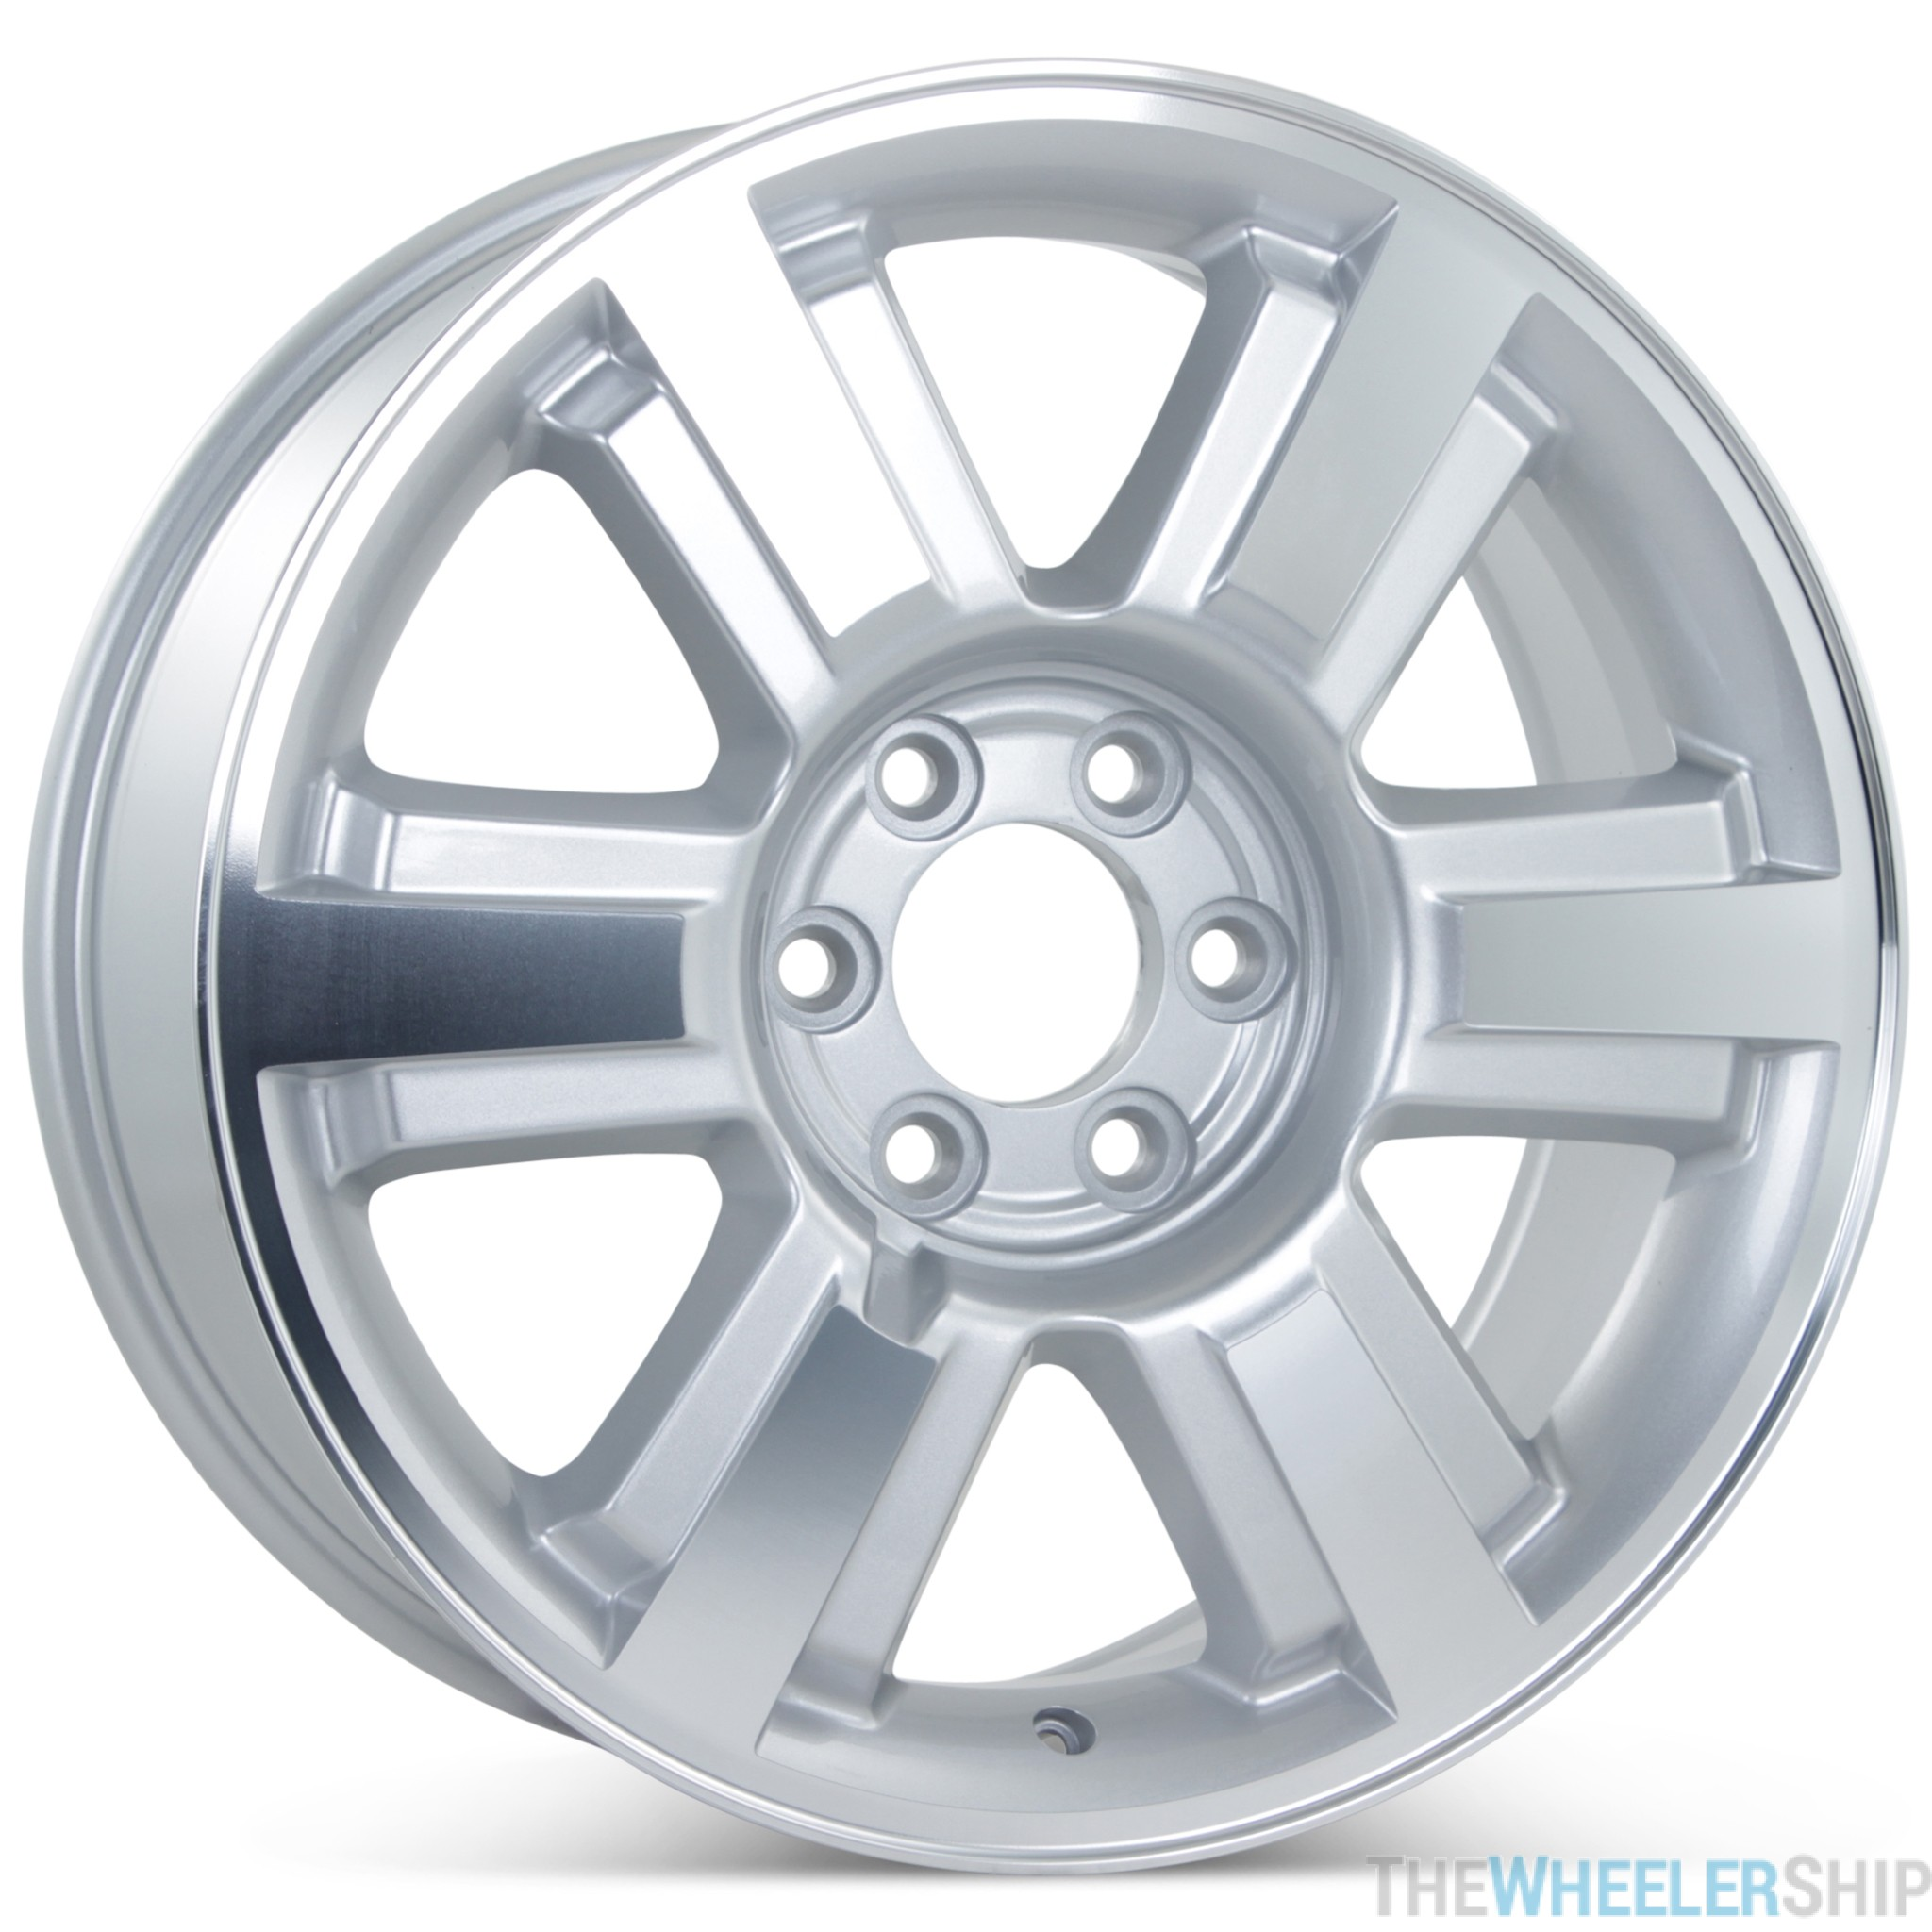 Ford F150 Wheels >> New 20 X 8 5 Replacement Wheel For Ford F 150 F150 Pick Up 2006 2007 2008 Rim 3646